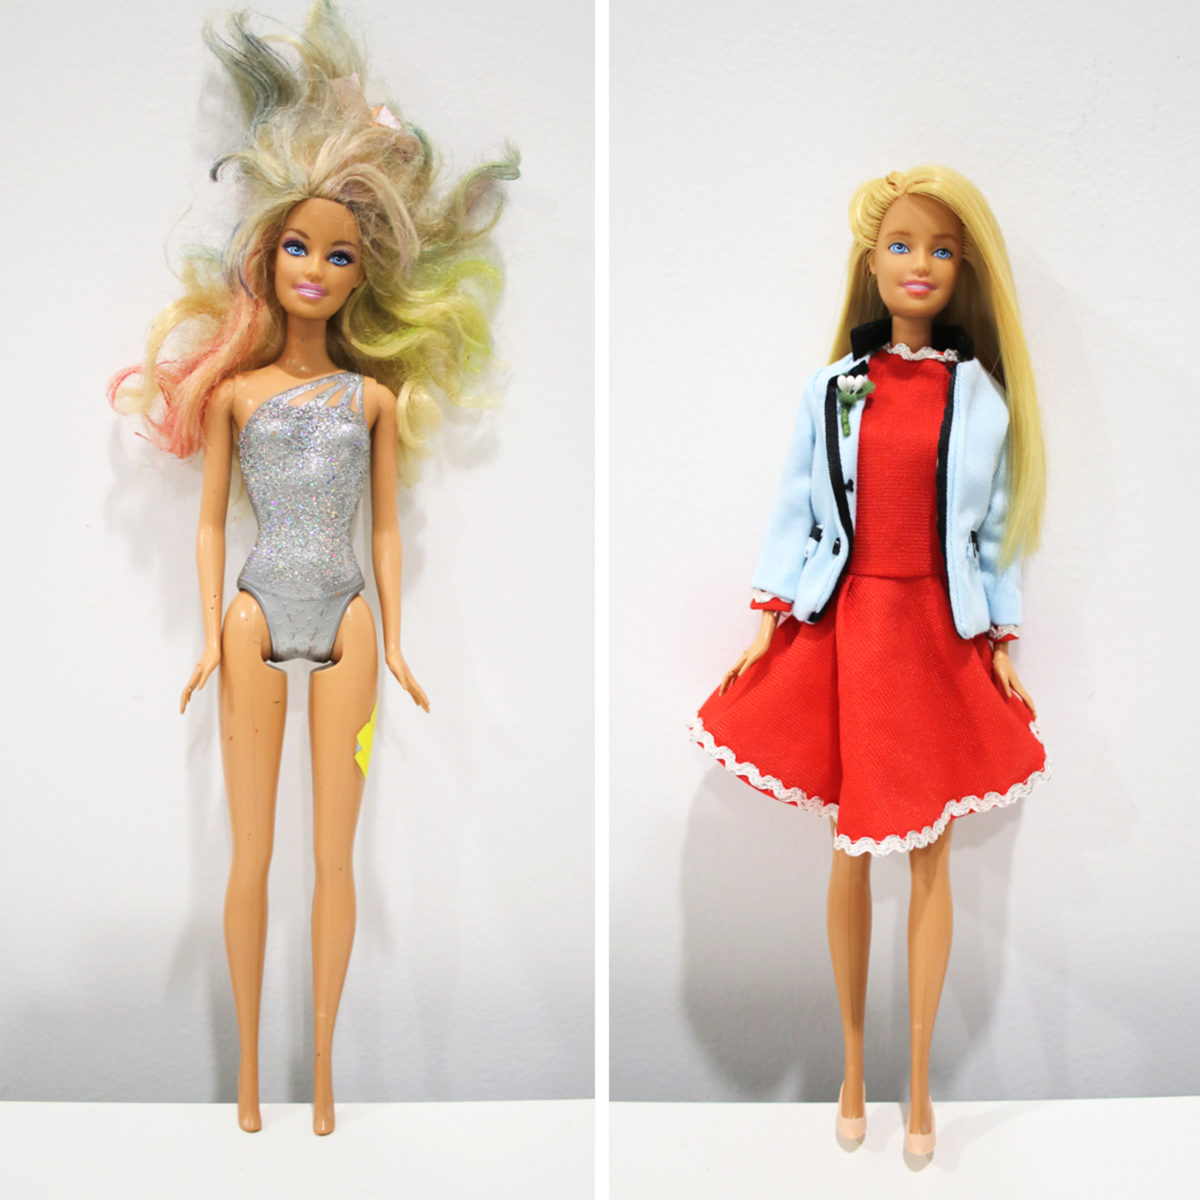 New Life Doll Project 2020 (ongoing)